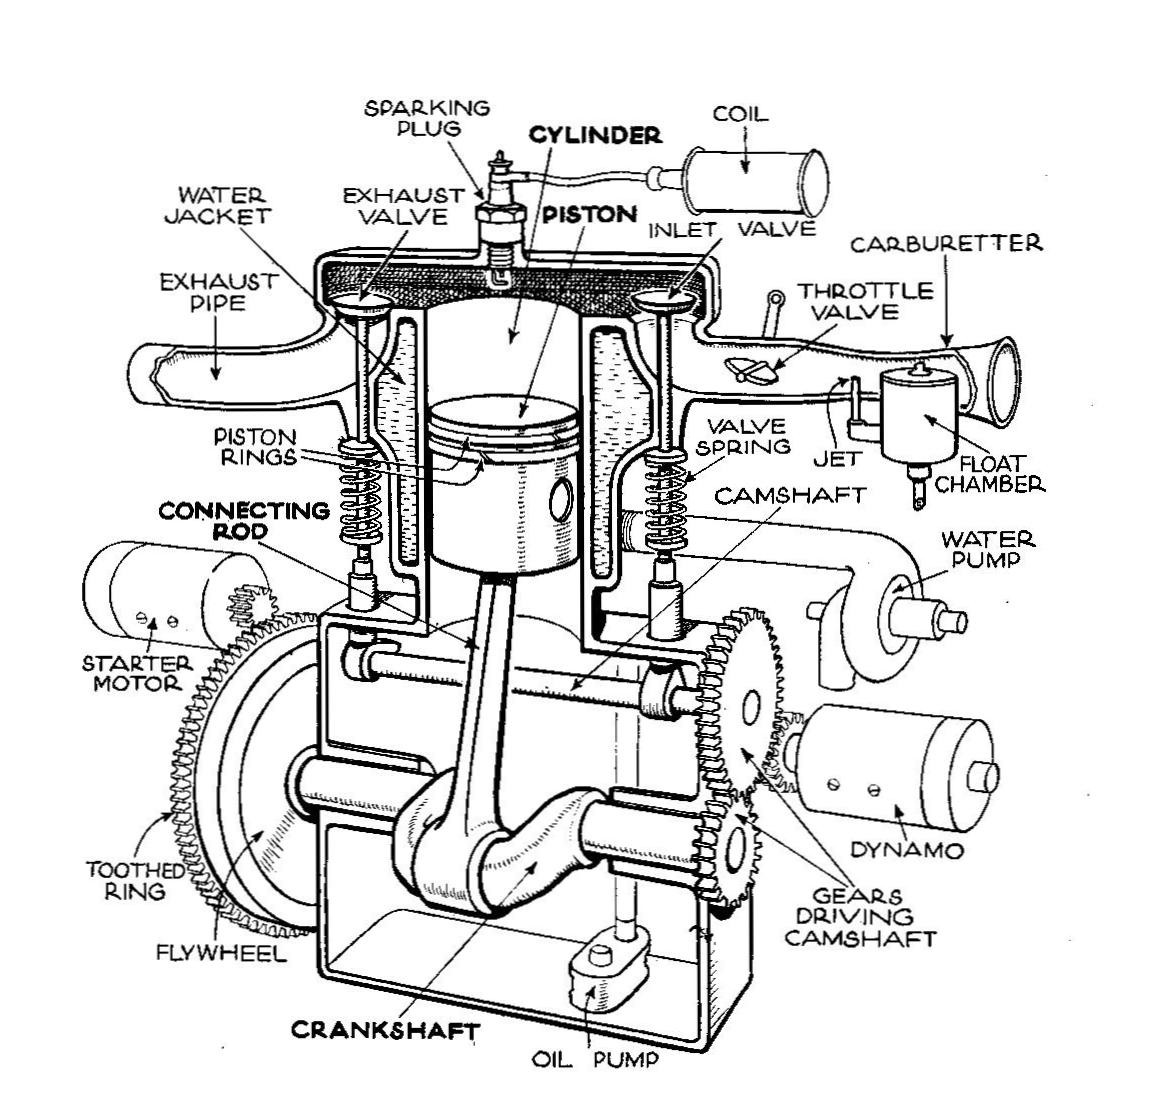 hight resolution of engine head diagram wiring diagram for you t head engine wikipedia diesel engine cylinder head diagram